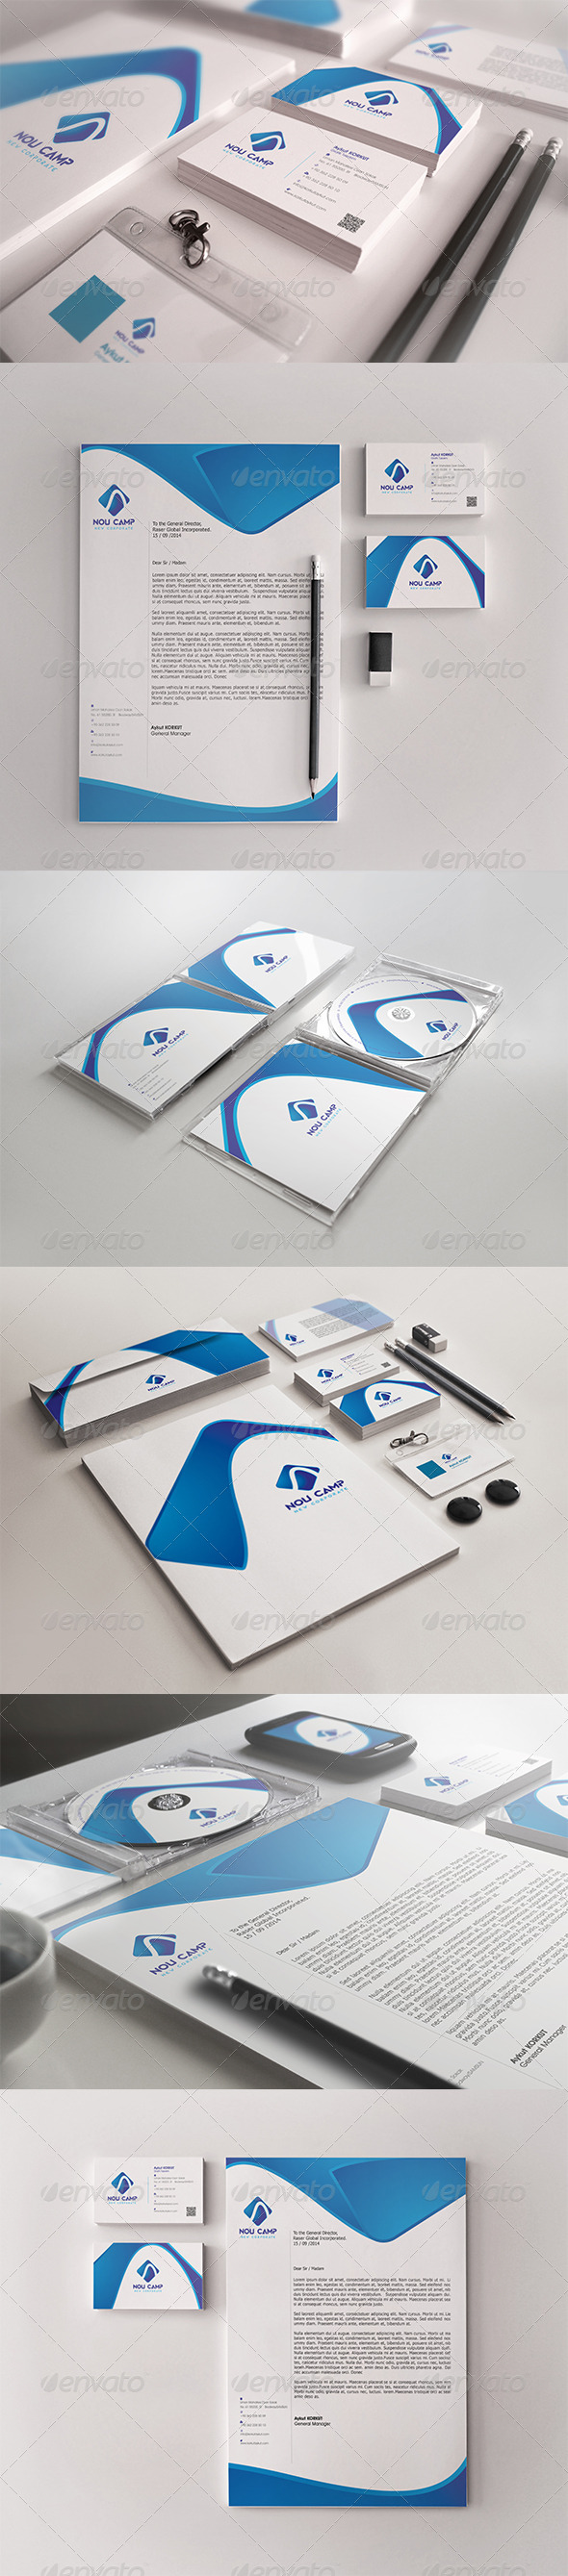 GraphicRiver Nou Camp Corporate Identity Package 7875986